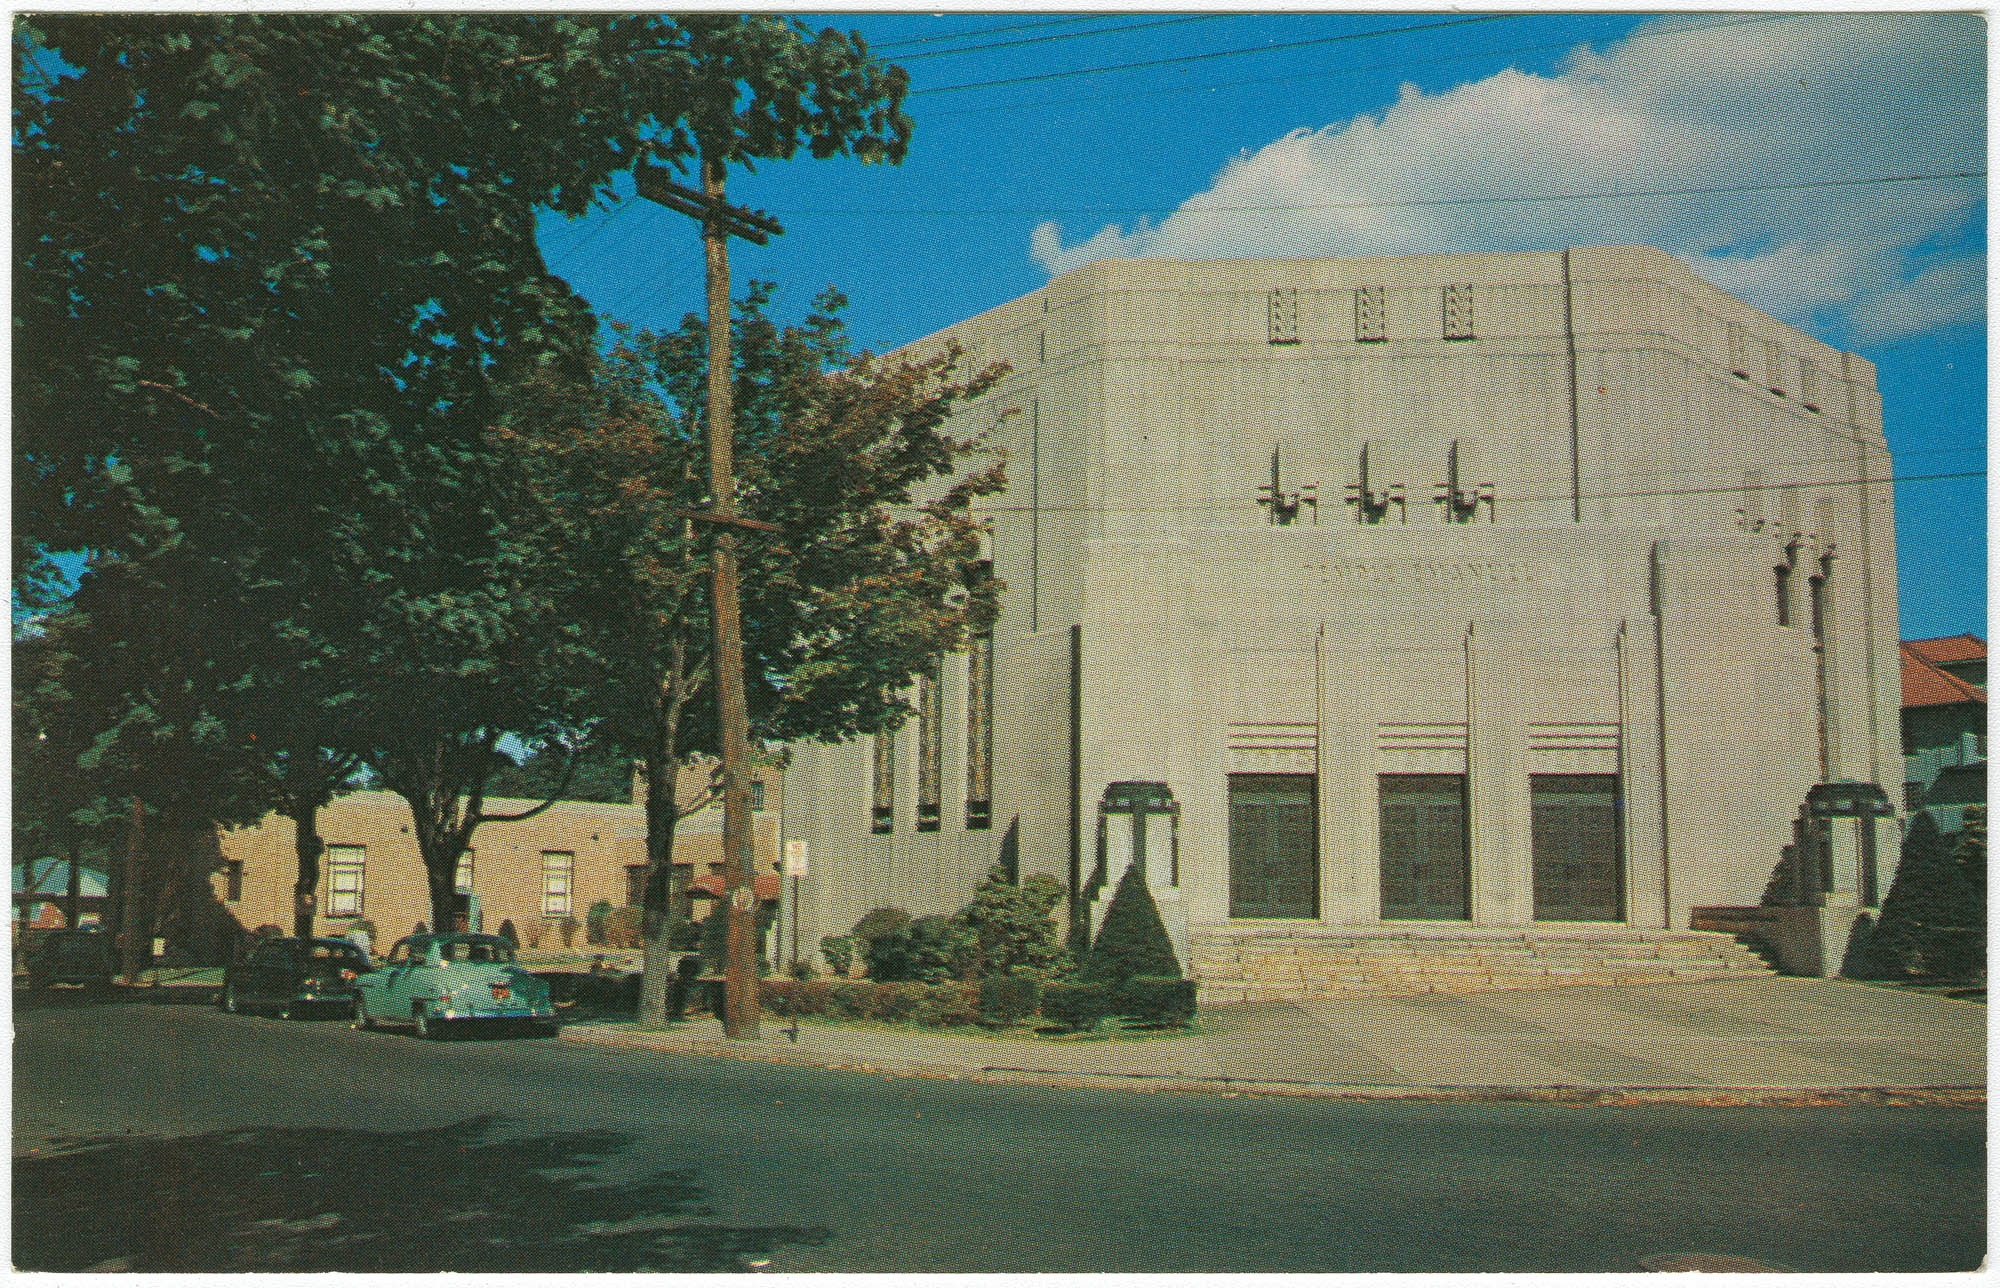 View of Temple Emanuel, located at Broadway and East 33rd Street, Paterson, N.J.